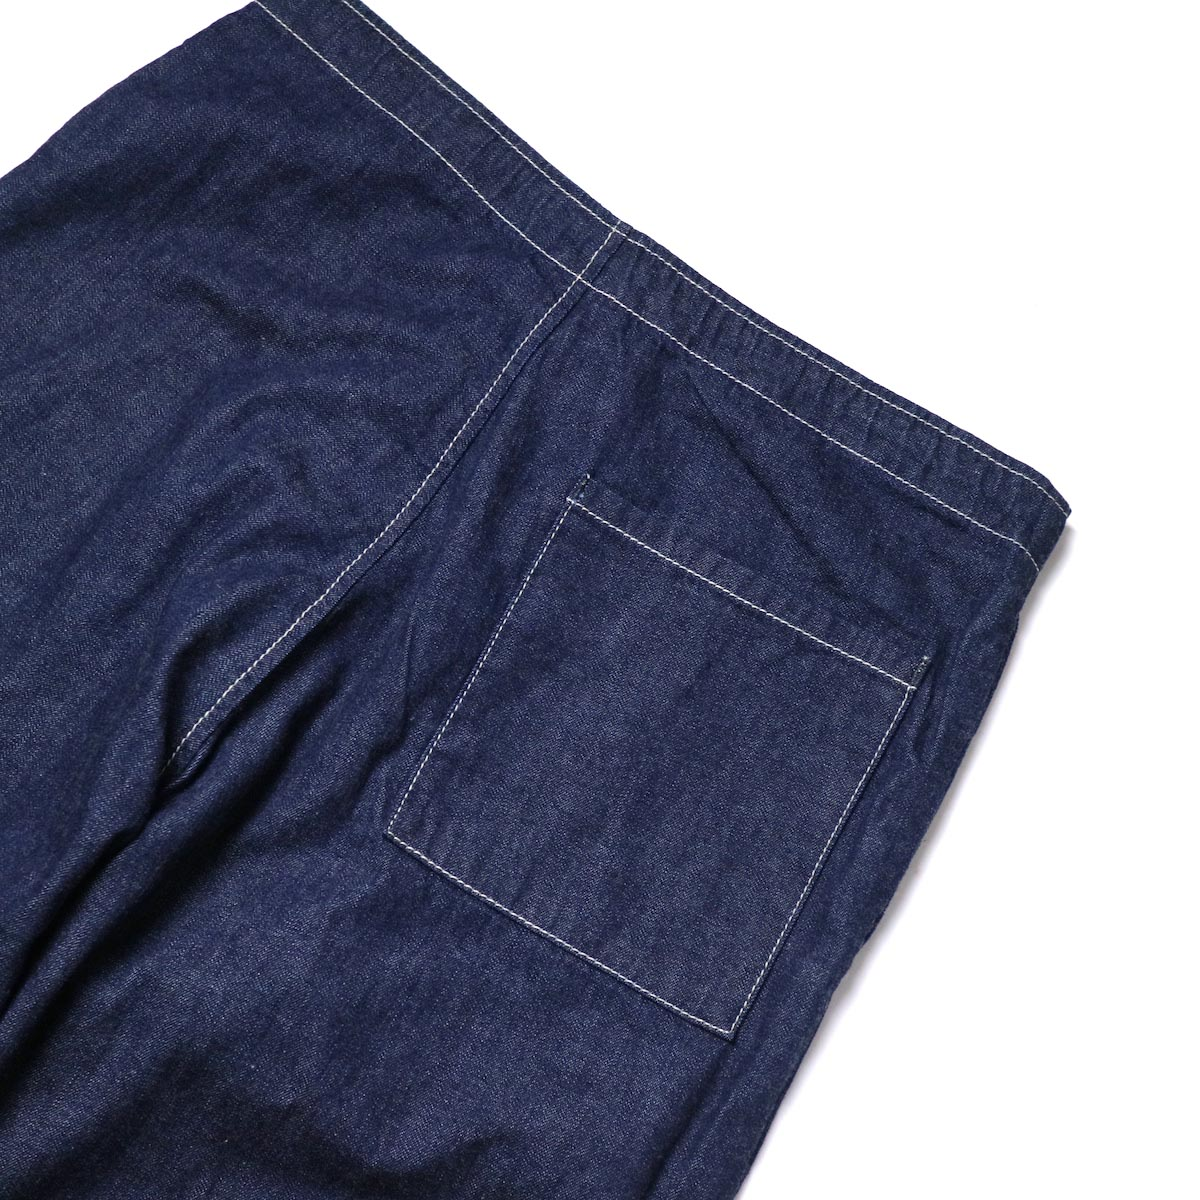 MexiPa / Selvage Denim Mexican PT ヒップポケット